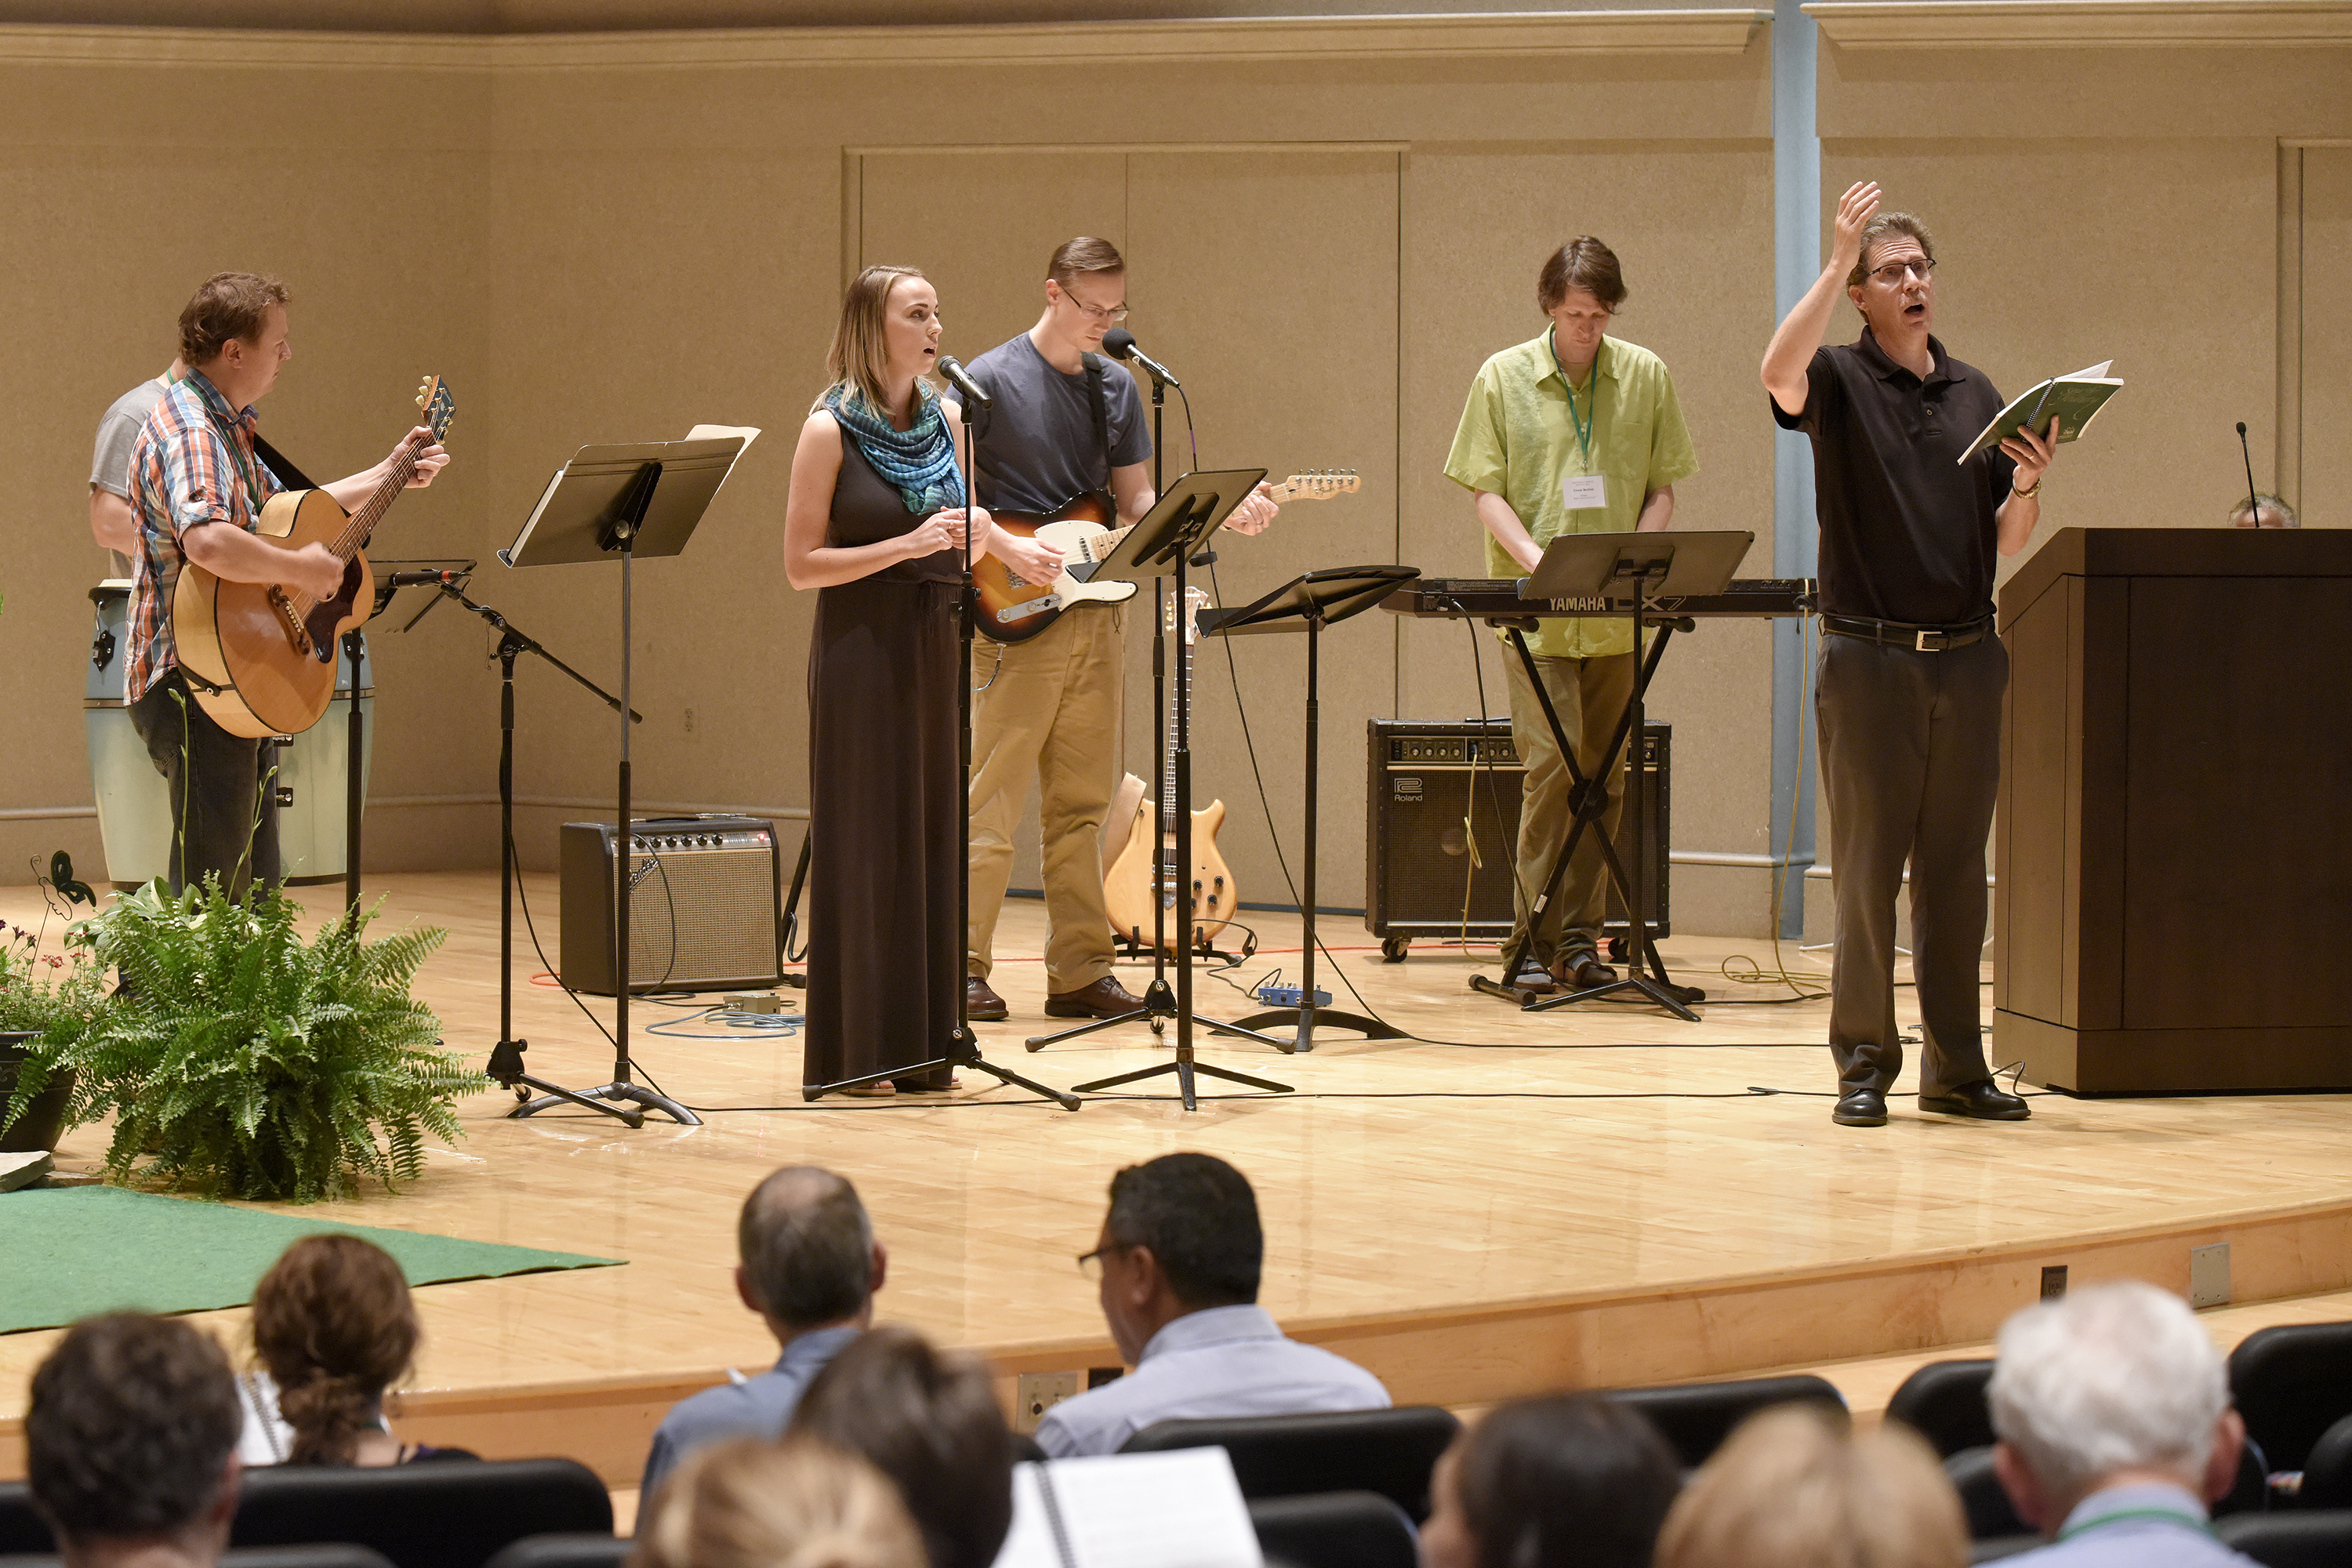 The worship band plays during the Friday evening service at Yoder Recital Hall during the Central District Conference, Friday, June 23, 2017, at Bluffton University, Bluffton, OH. From left are Bradley Kauffman, Rileigh Zickafoose, Joel Wildermuth, Trevor Bechtel and song leader Mark Suderman. Photograph by J. Tyler Klassen